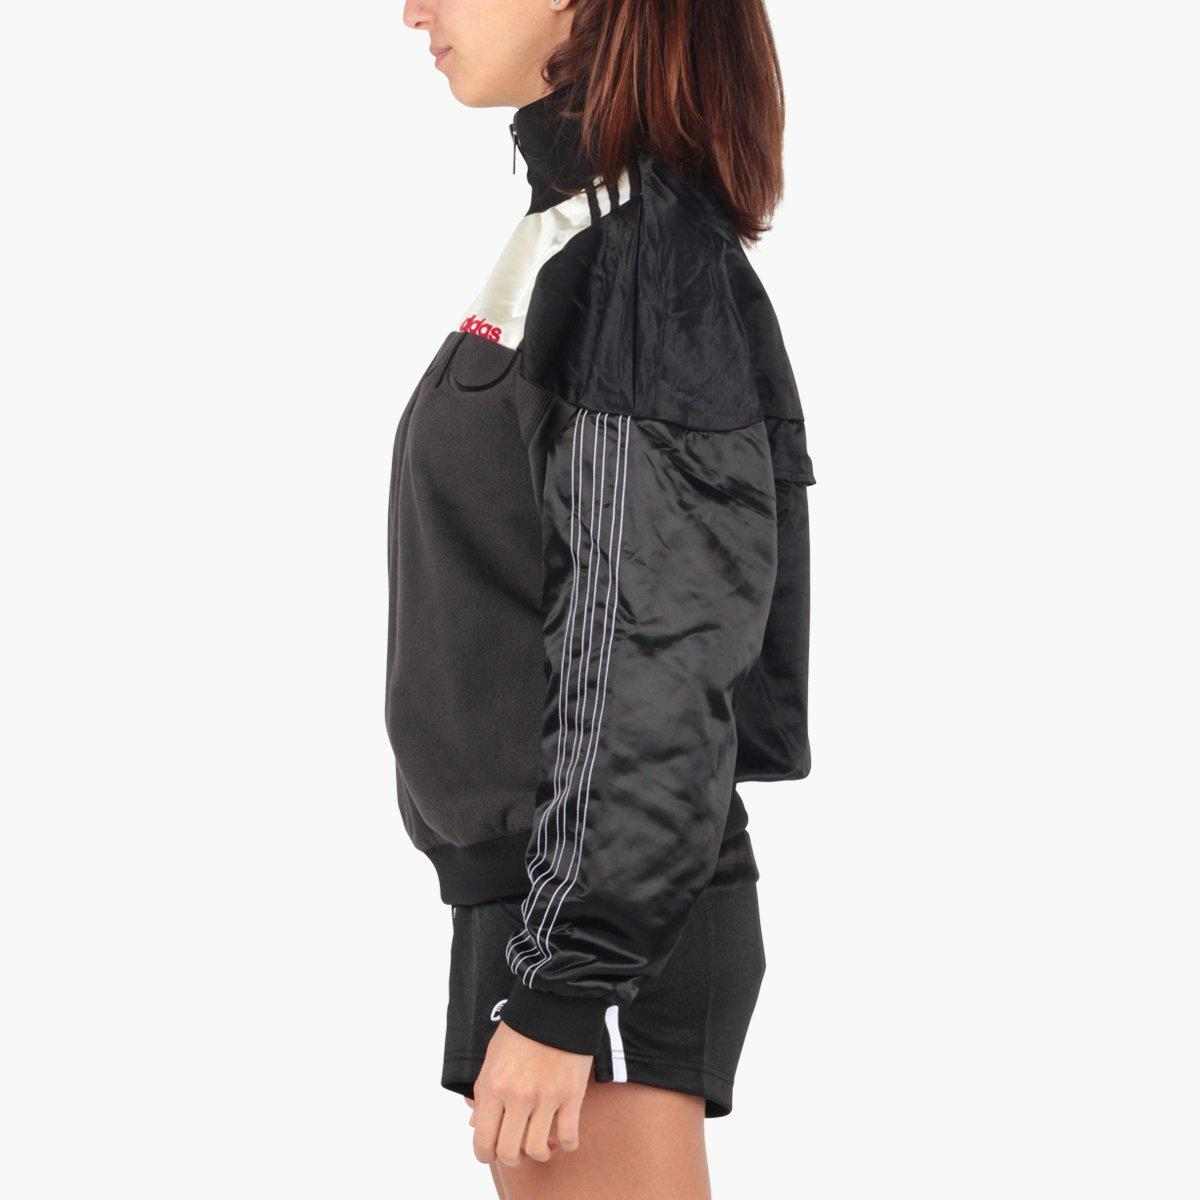 fca3dd0f3eba Adidas Originals - Black Adidas Originals By Alexander Wang Disjoin  Pullover - Lyst. View fullscreen